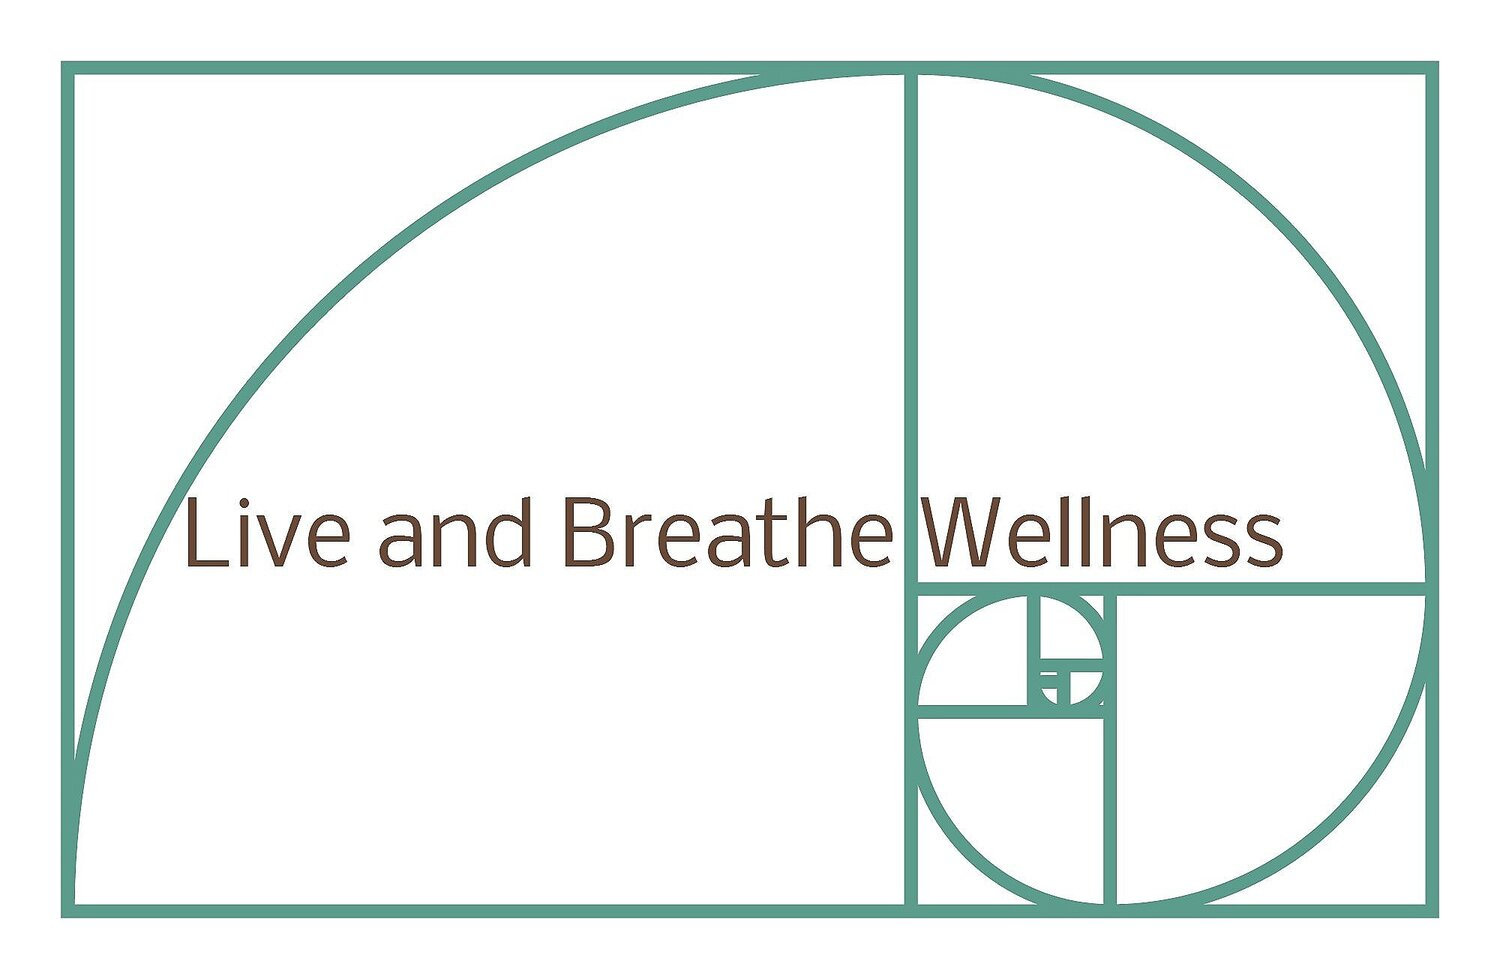 Live and Breathe Wellness